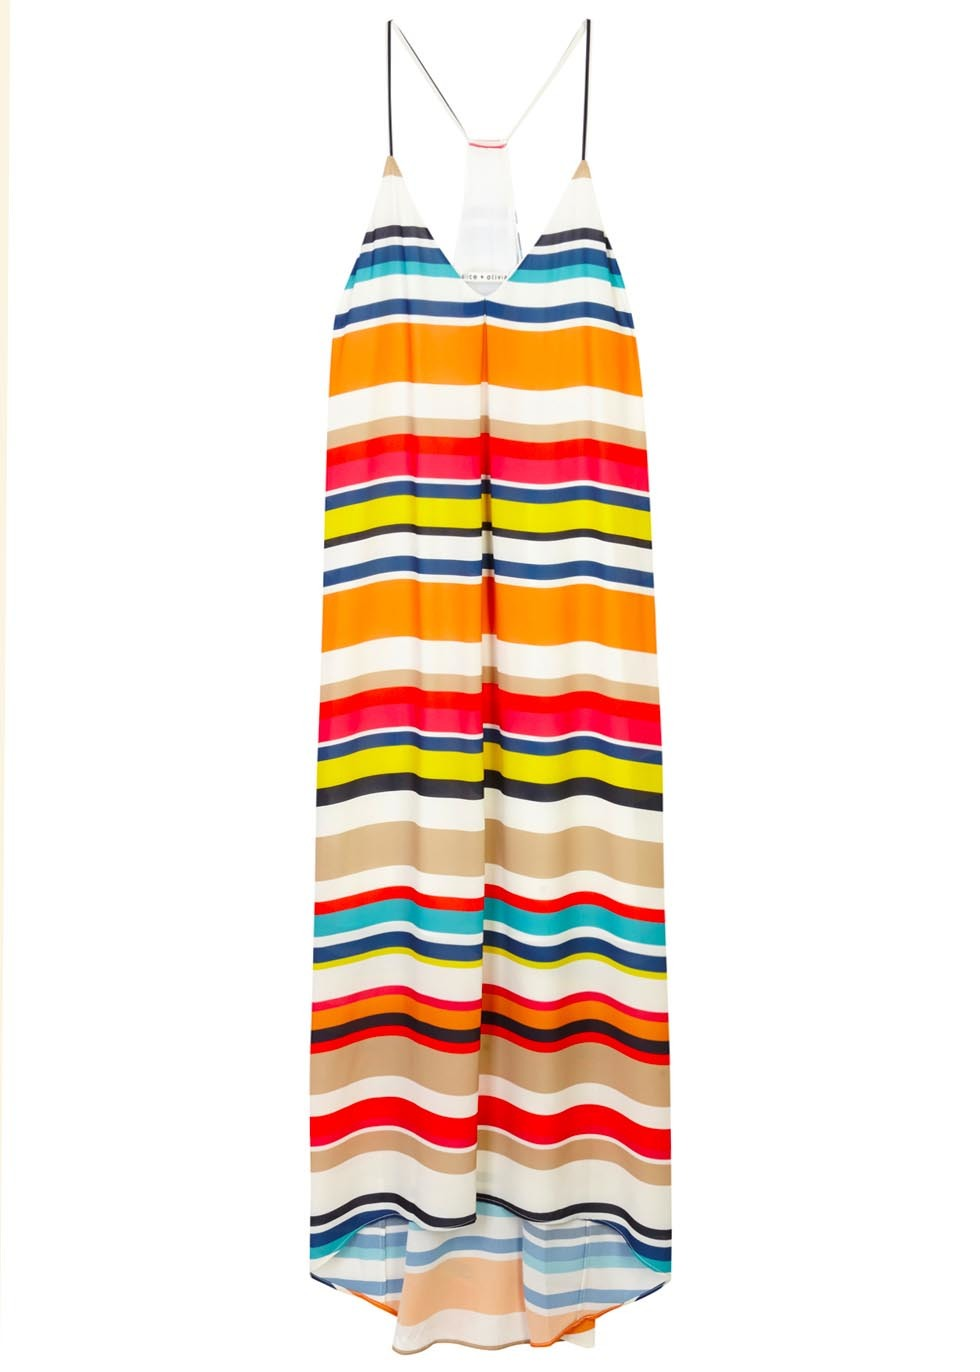 Cortes Striped Georgette Midi Dress - neckline: v-neck; sleeve style: spaghetti straps; fit: loose; pattern: horizontal stripes; style: maxi dress; length: ankle length; back detail: racer back/sports back; secondary colour: yellow; predominant colour: bright orange; occasions: evening; fibres: polyester/polyamide - 100%; sleeve length: sleeveless; pattern type: fabric; pattern size: standard; texture group: other - light to midweight; multicoloured: multicoloured; season: s/s 2016; wardrobe: event